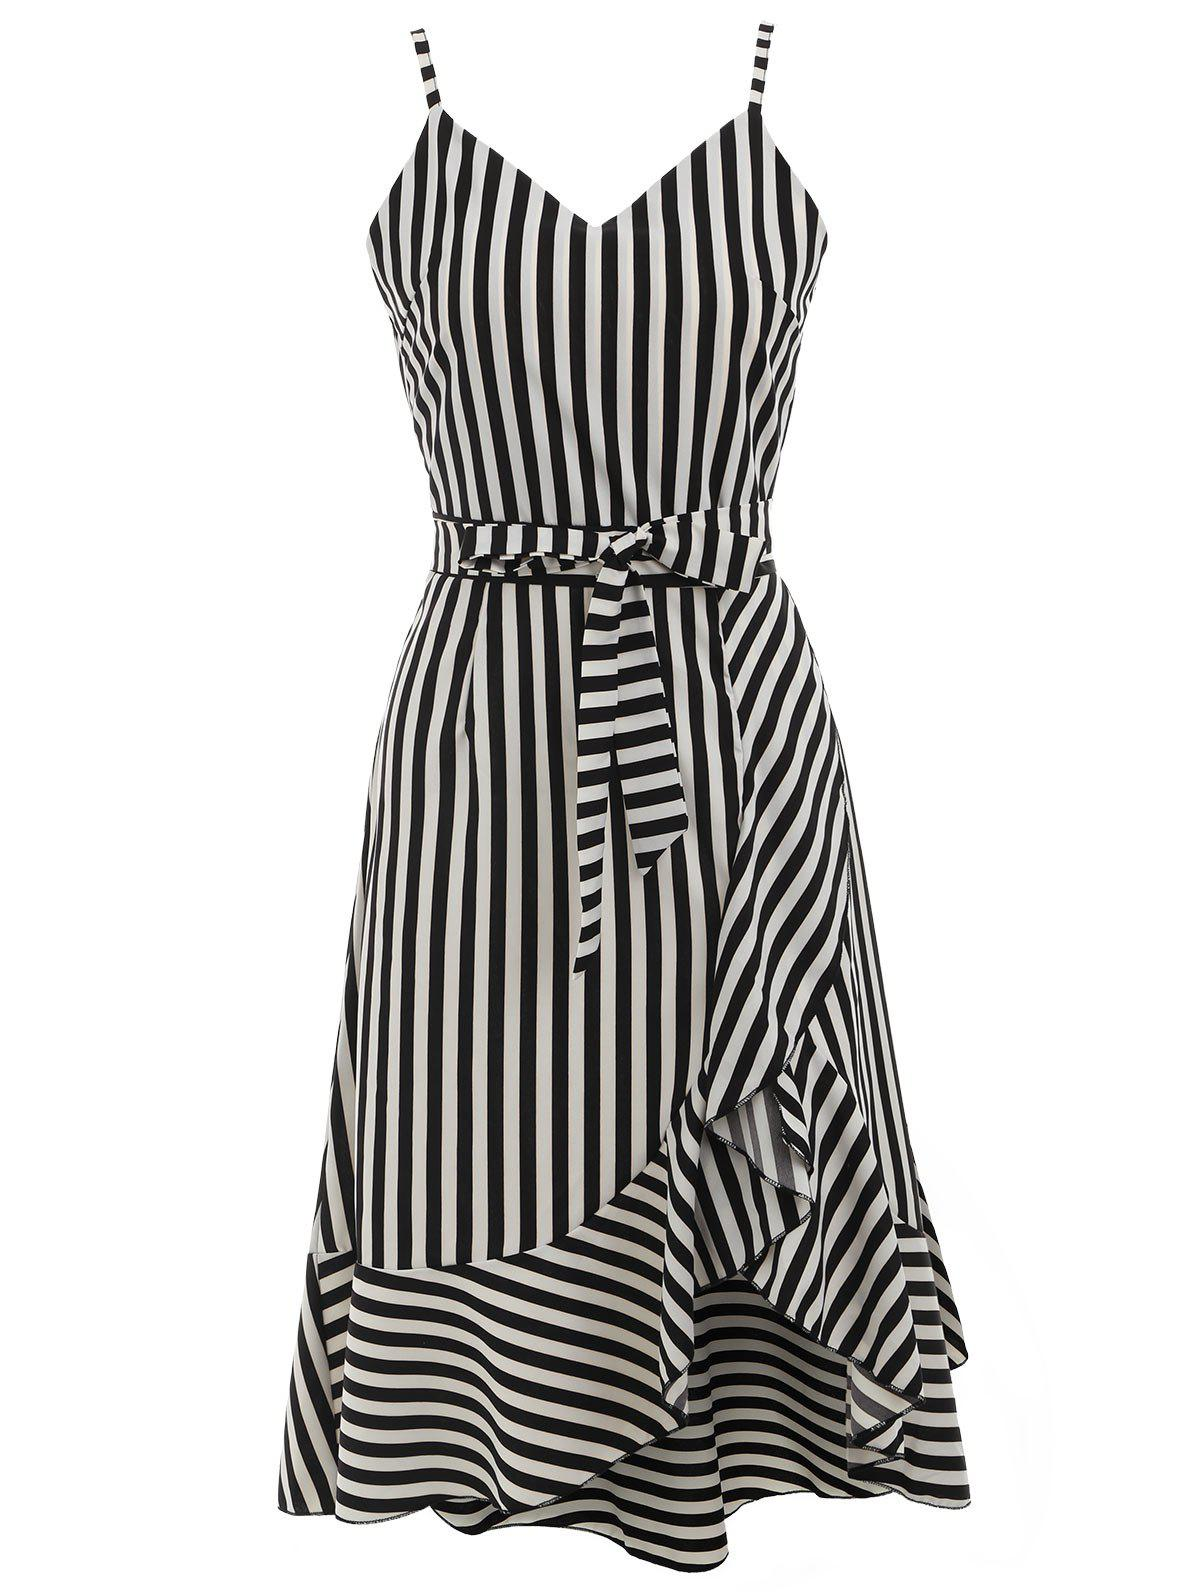 Spaghetti Strap Striped High Low Dress - BLACK S